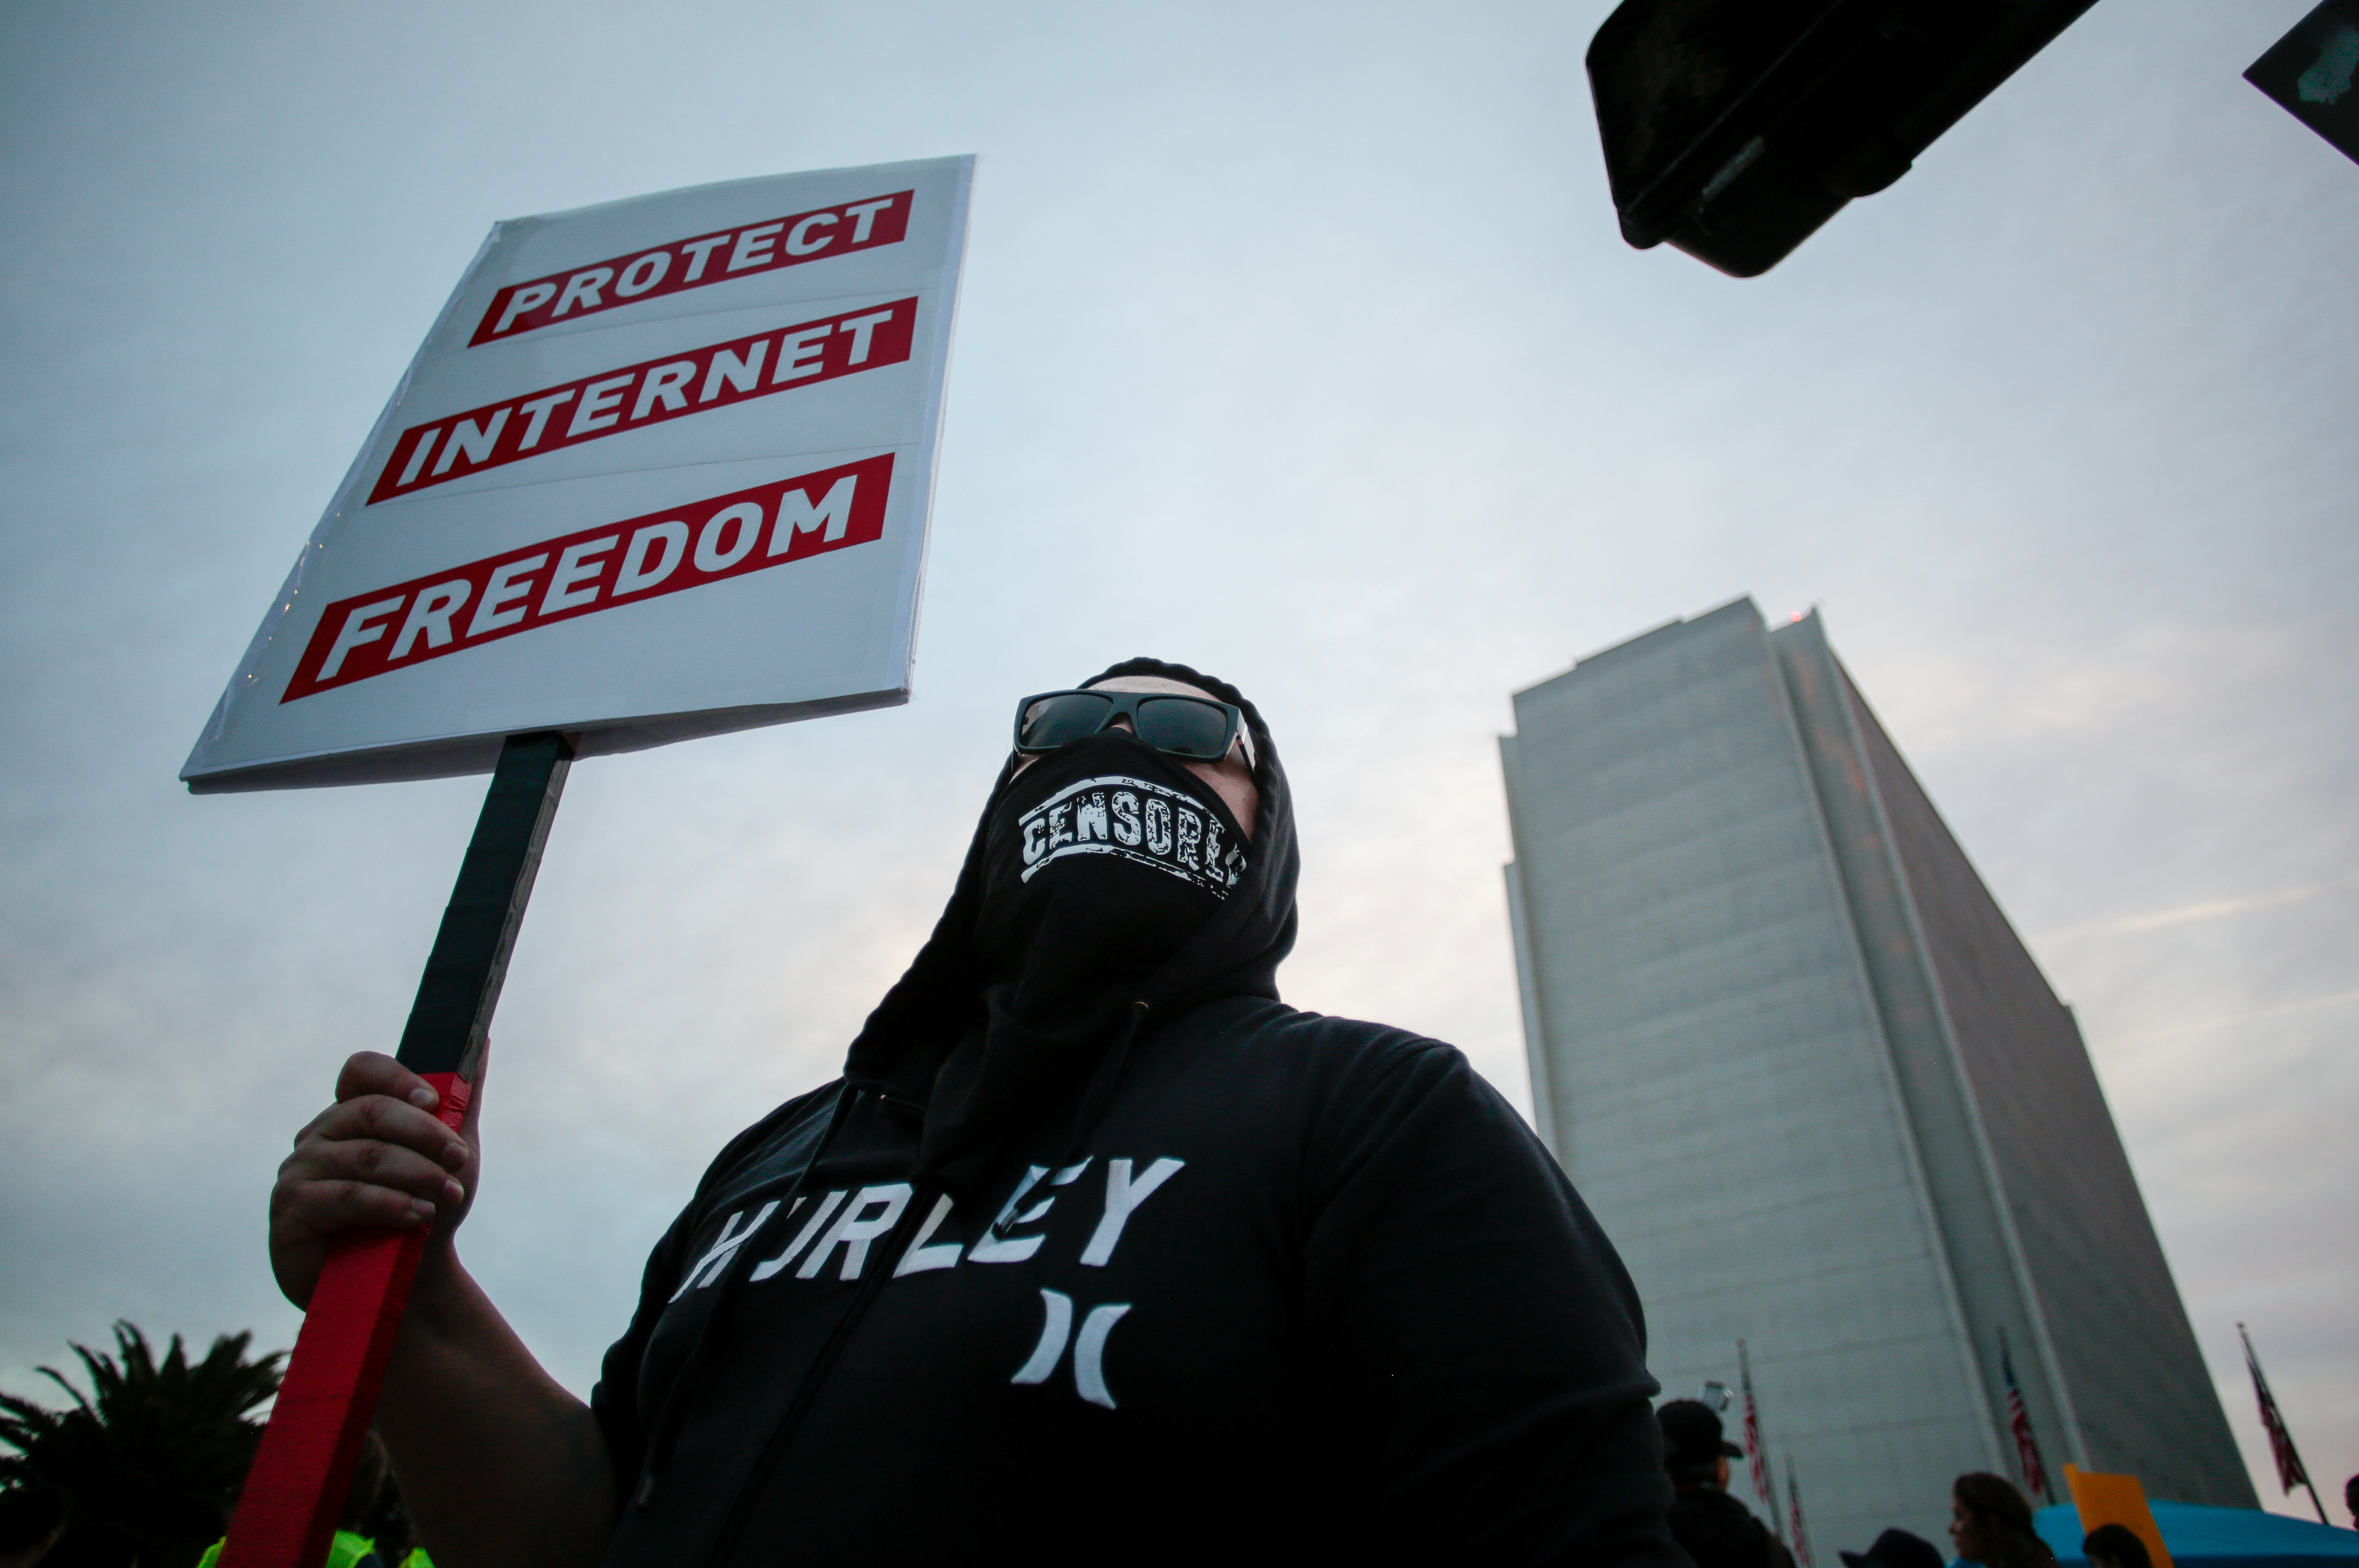 Supporter of Net Neutrality Lance Brown Eyes protests the FCC's recent decision to repeal the program in Los Angeles, California, November 28, 2017. REUTERS/ Kyle Grillot/Files